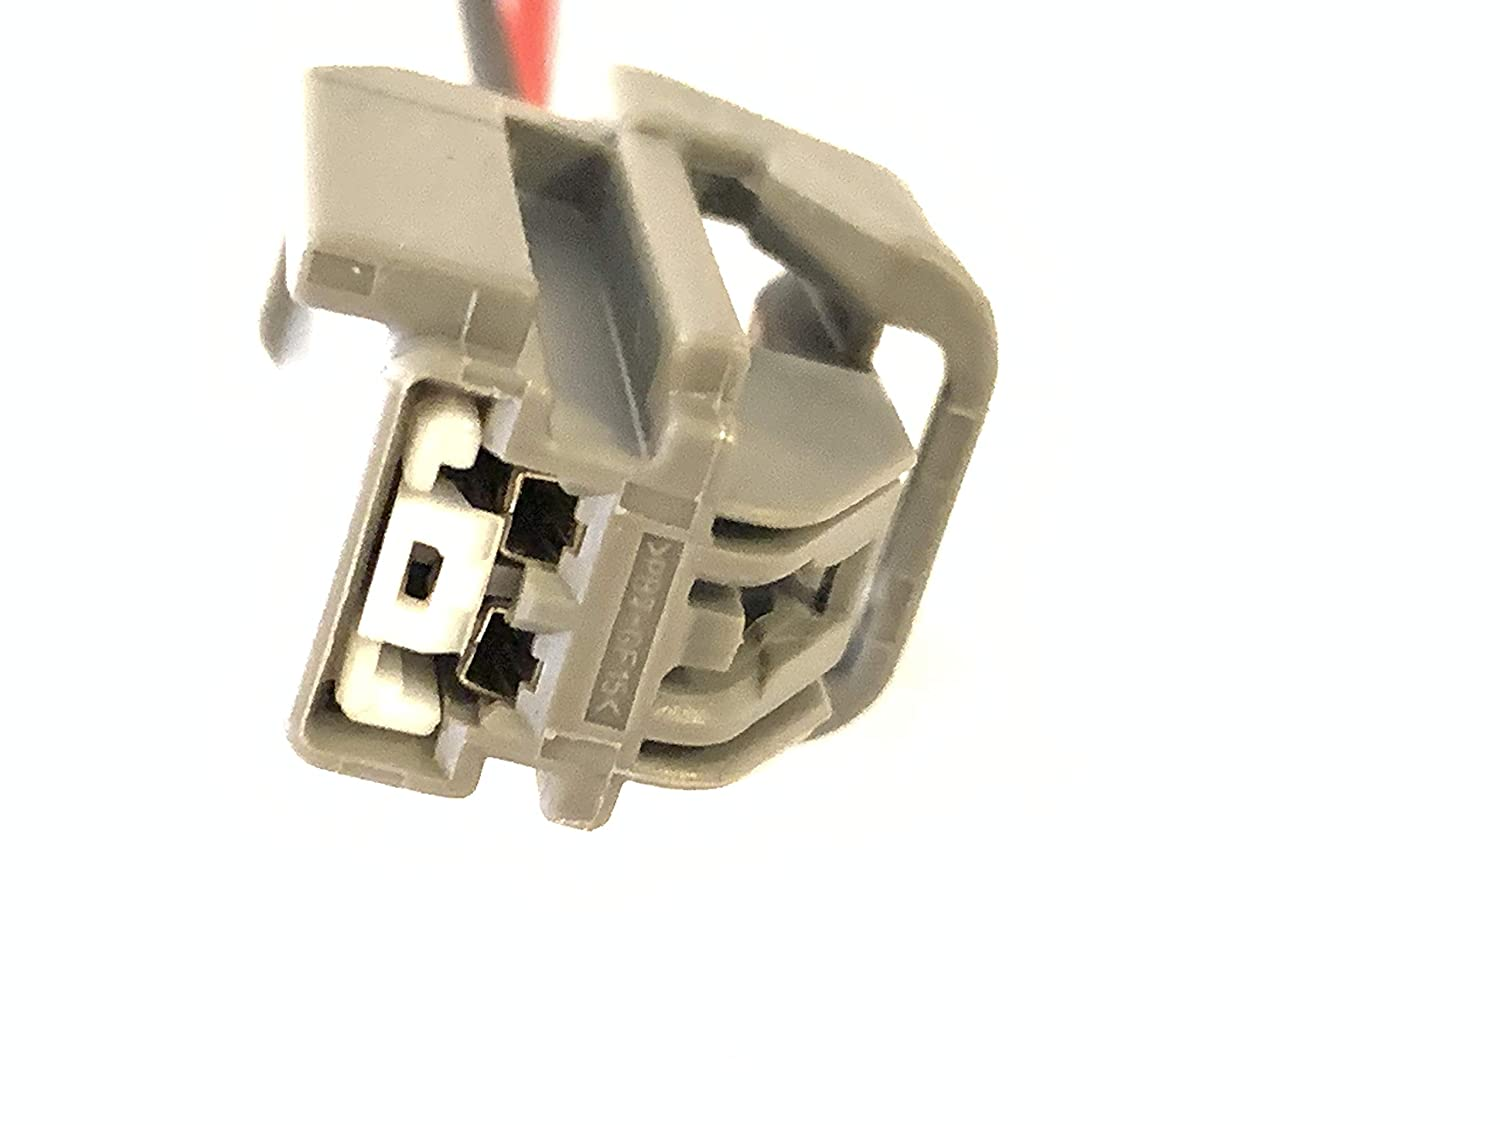 Equivalent replacement Pigtail Harness WPT-965 3U2Z-14S411-AEB